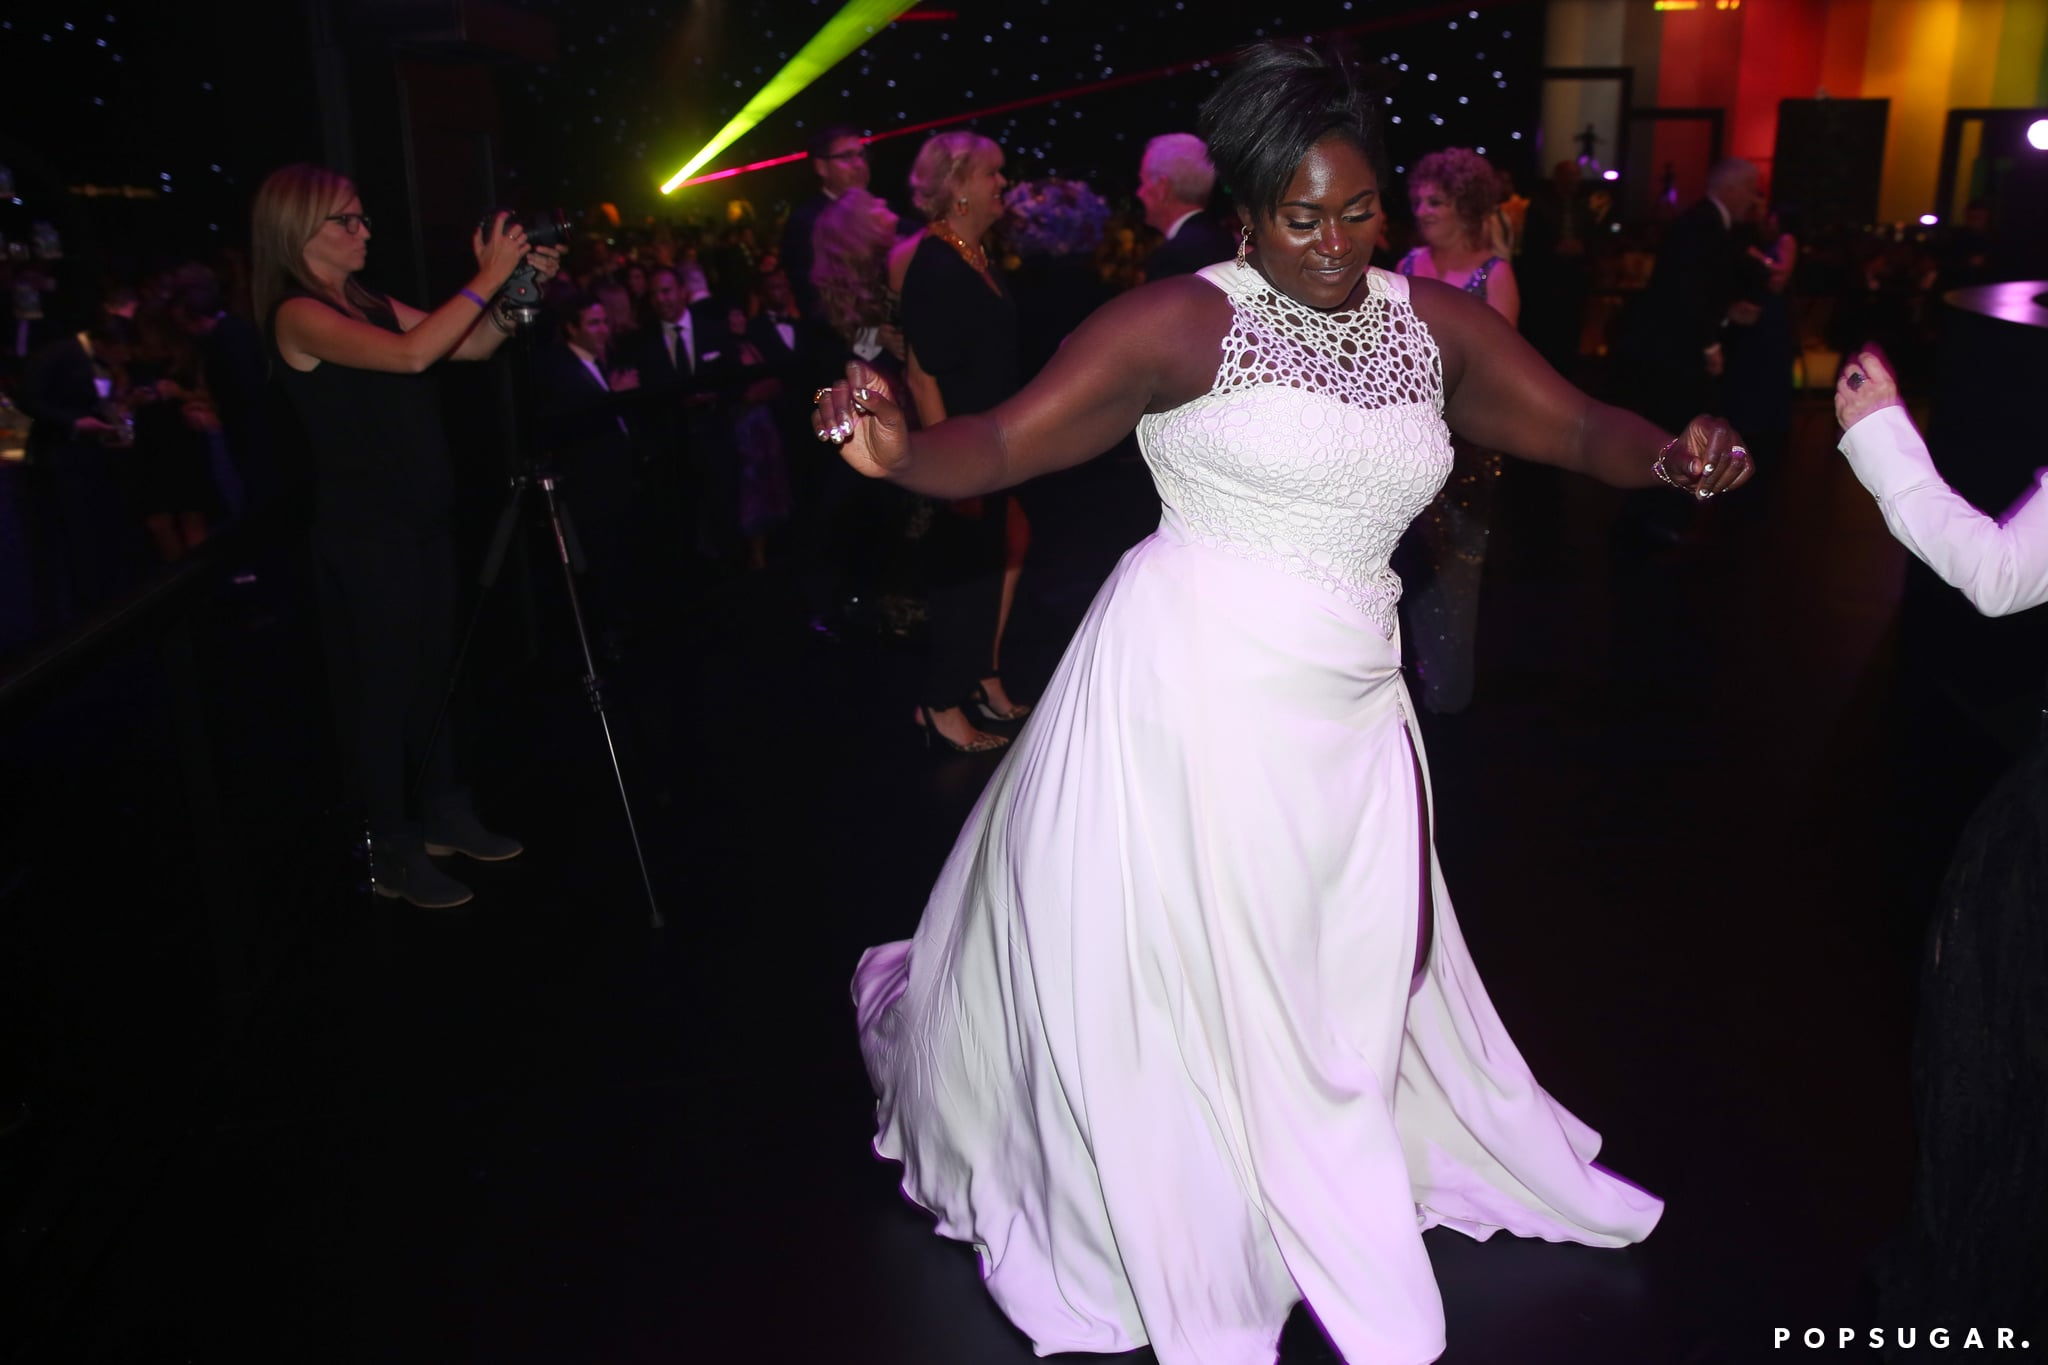 OITNB's Danielle Brooks commanded attention on the dance floor at the Governors Ball.